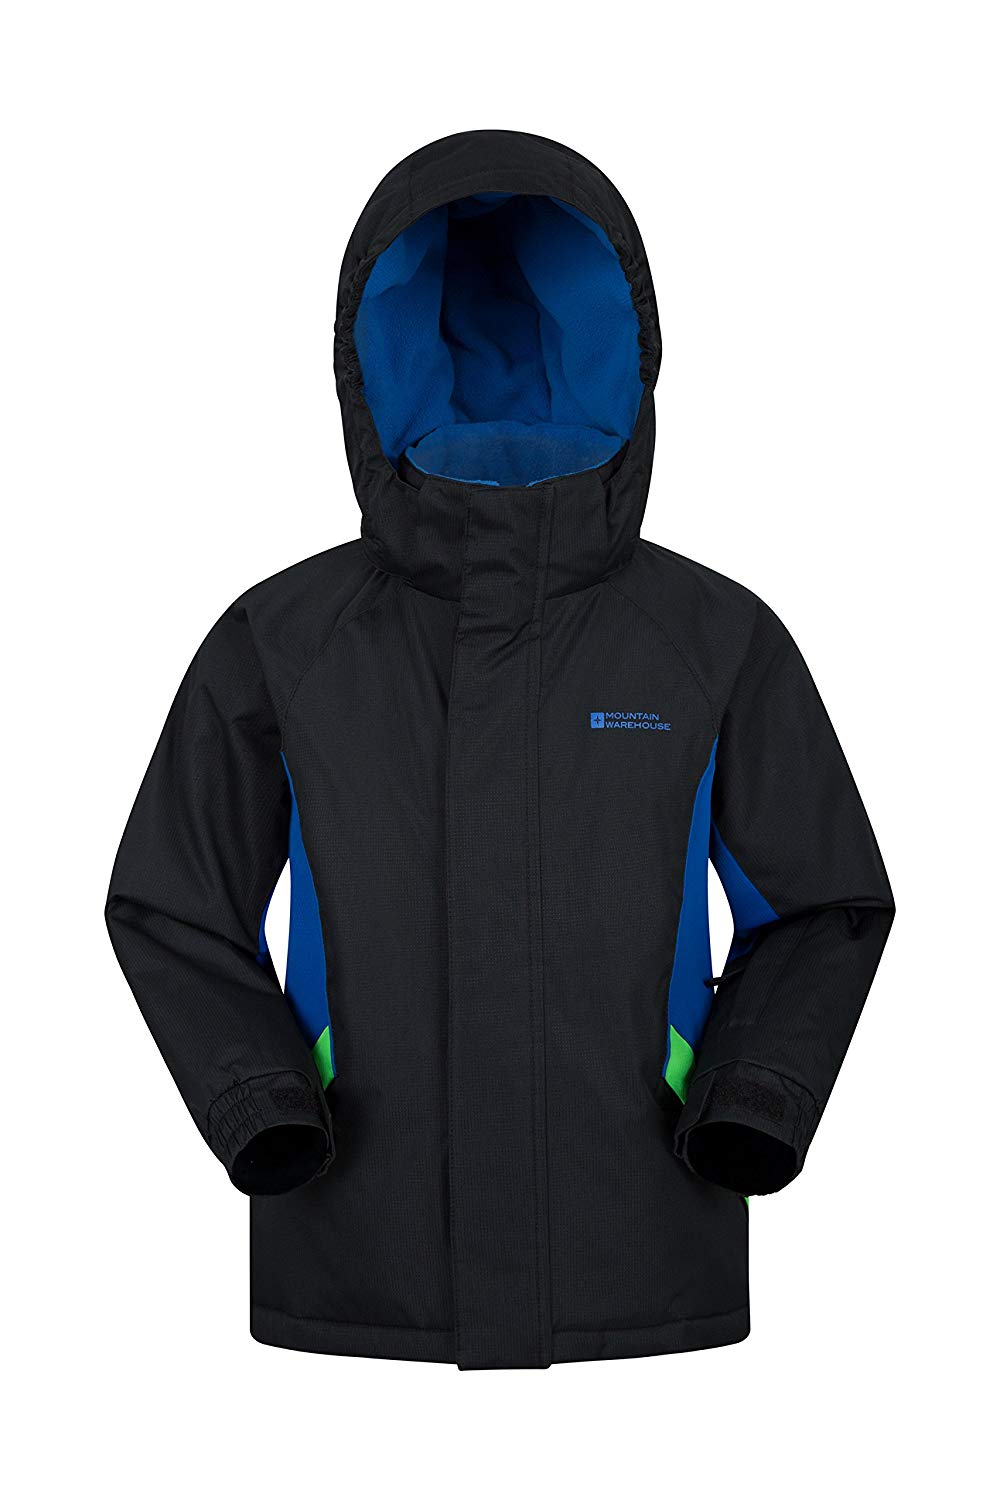 Mountain Warehouse Raptor Boy's Ski Jacket - Under $100